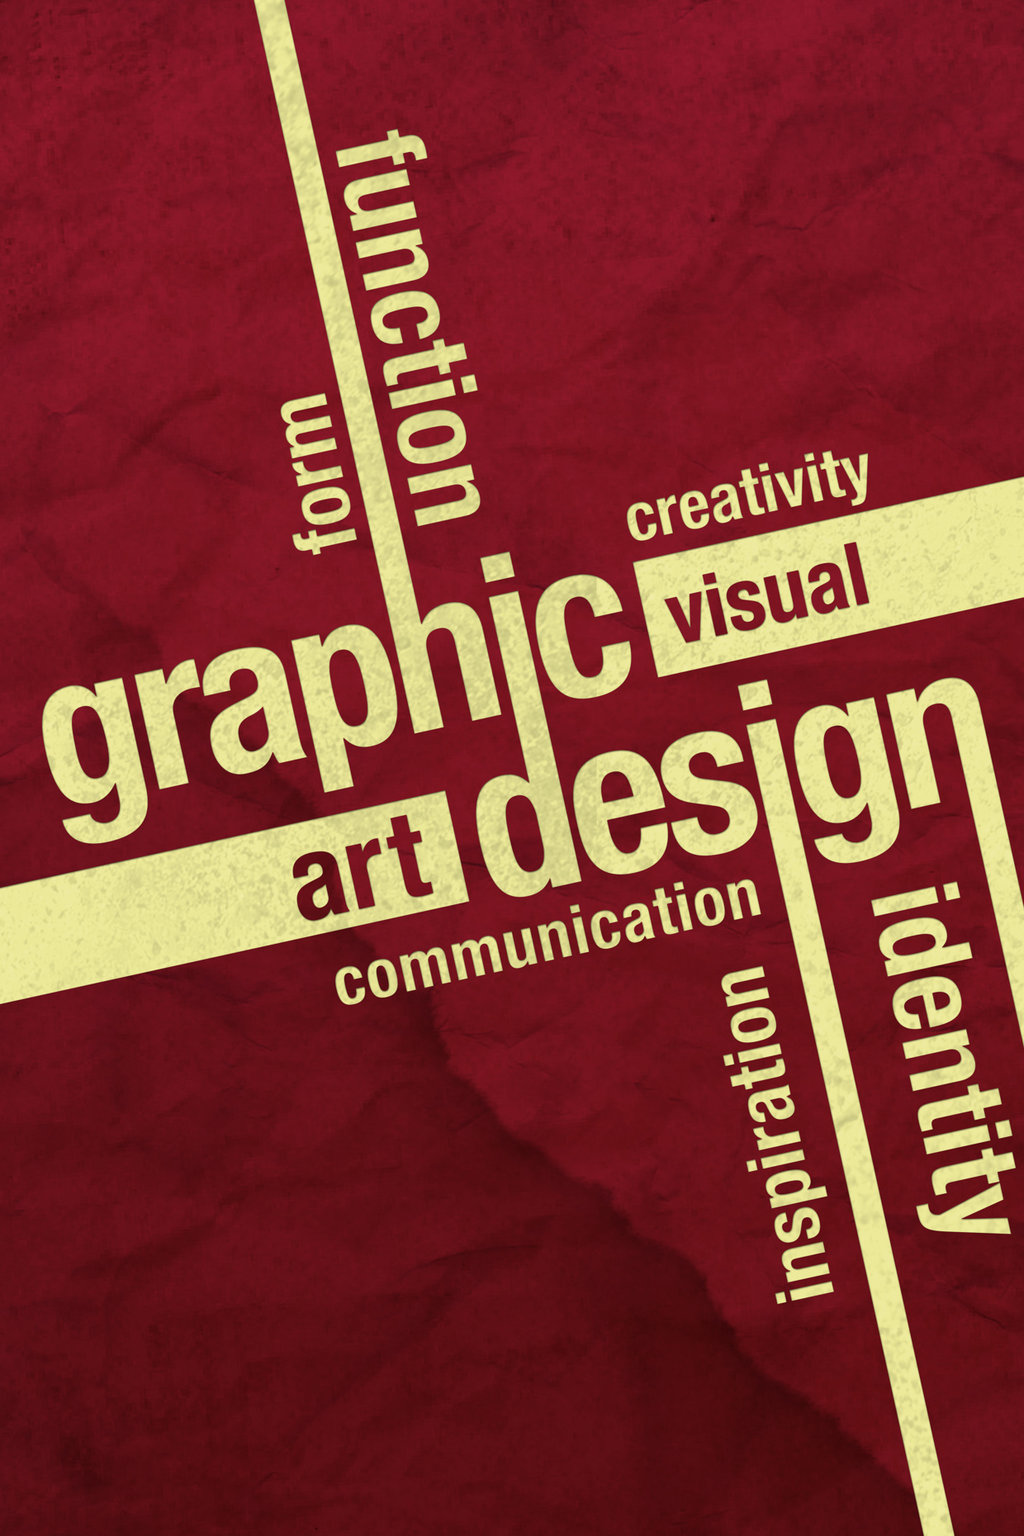 15 Graphic Design Typography Posters Images